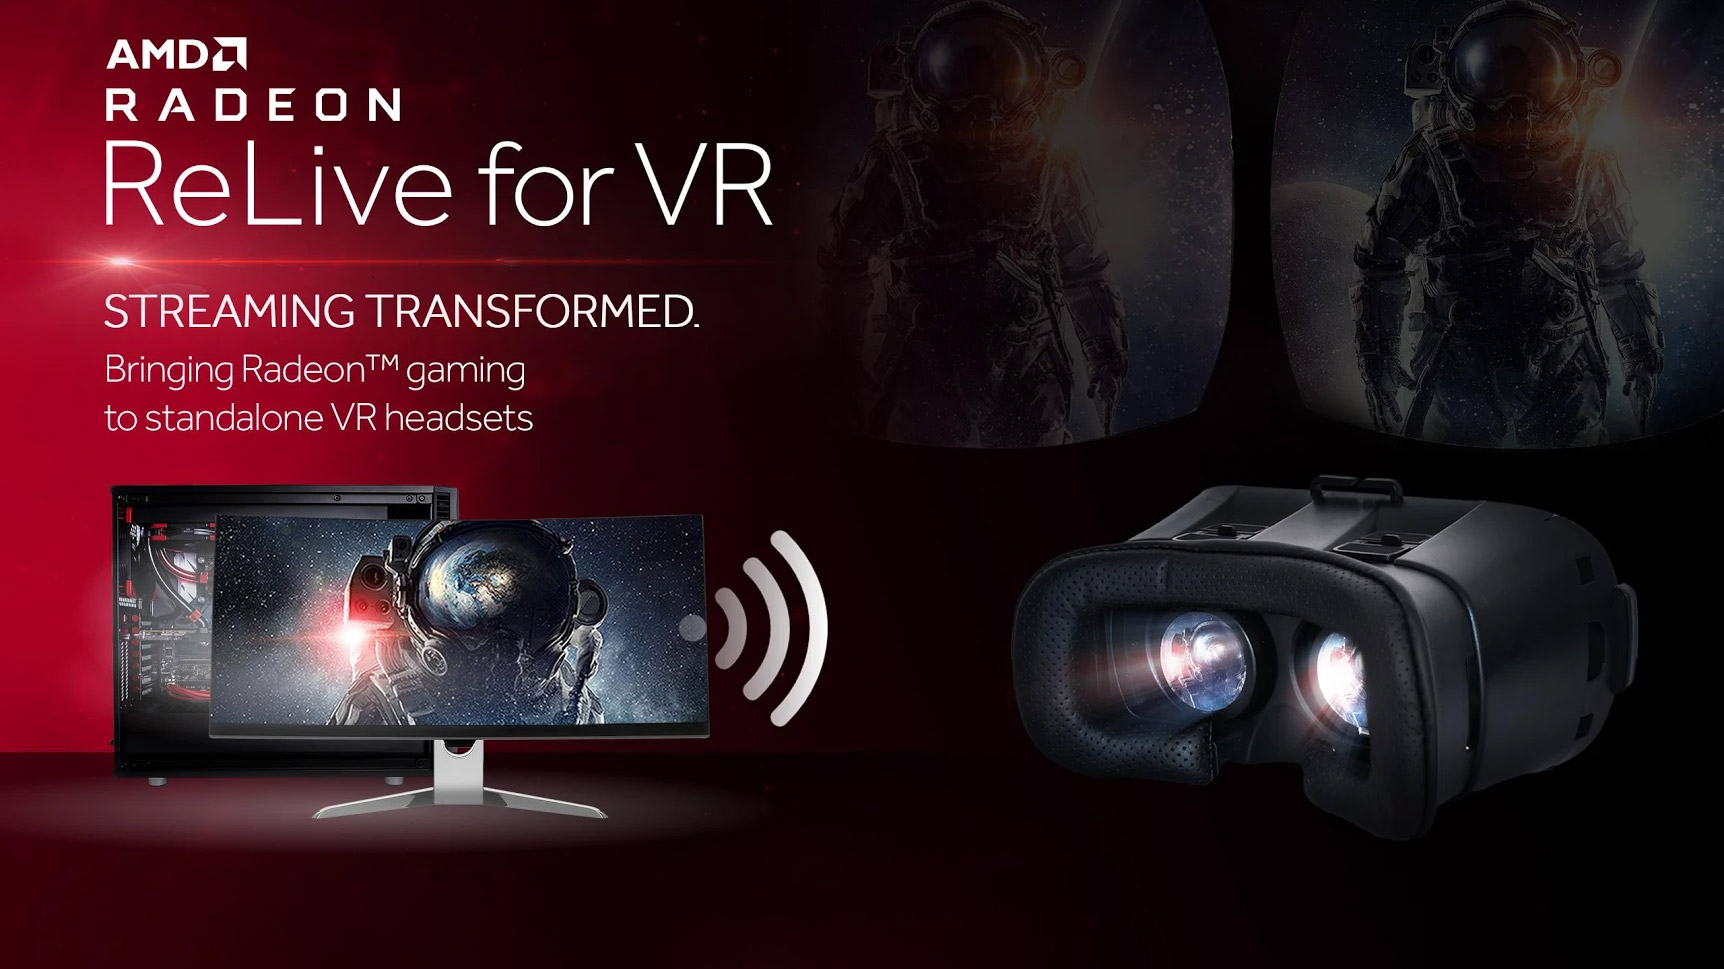 AMD 'Radeon ReLive for VR' Streams SteamVR Games to